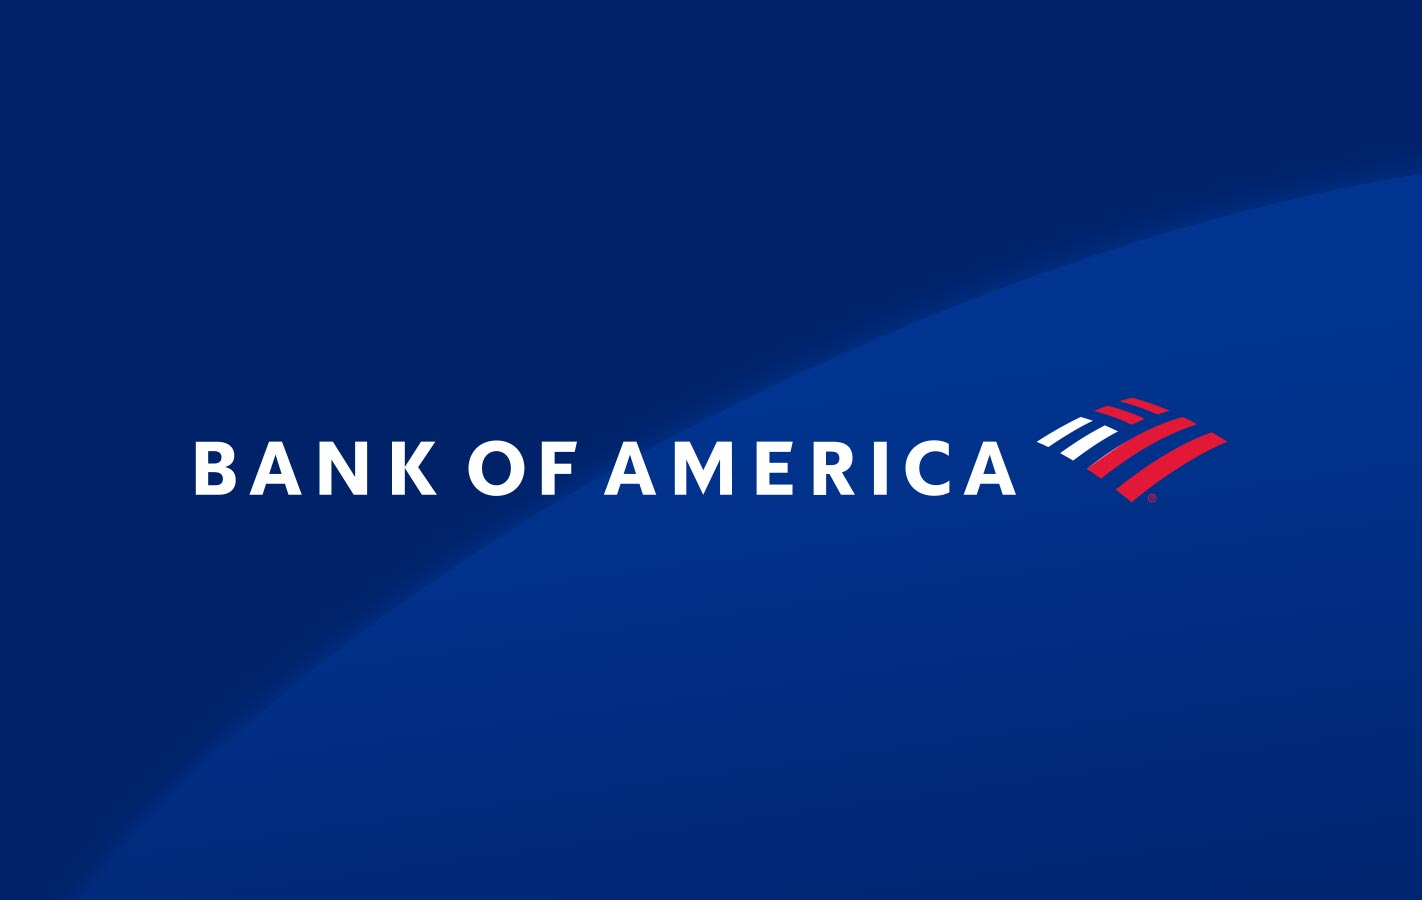 Bank of America Q1 Earnings Call Breakdown